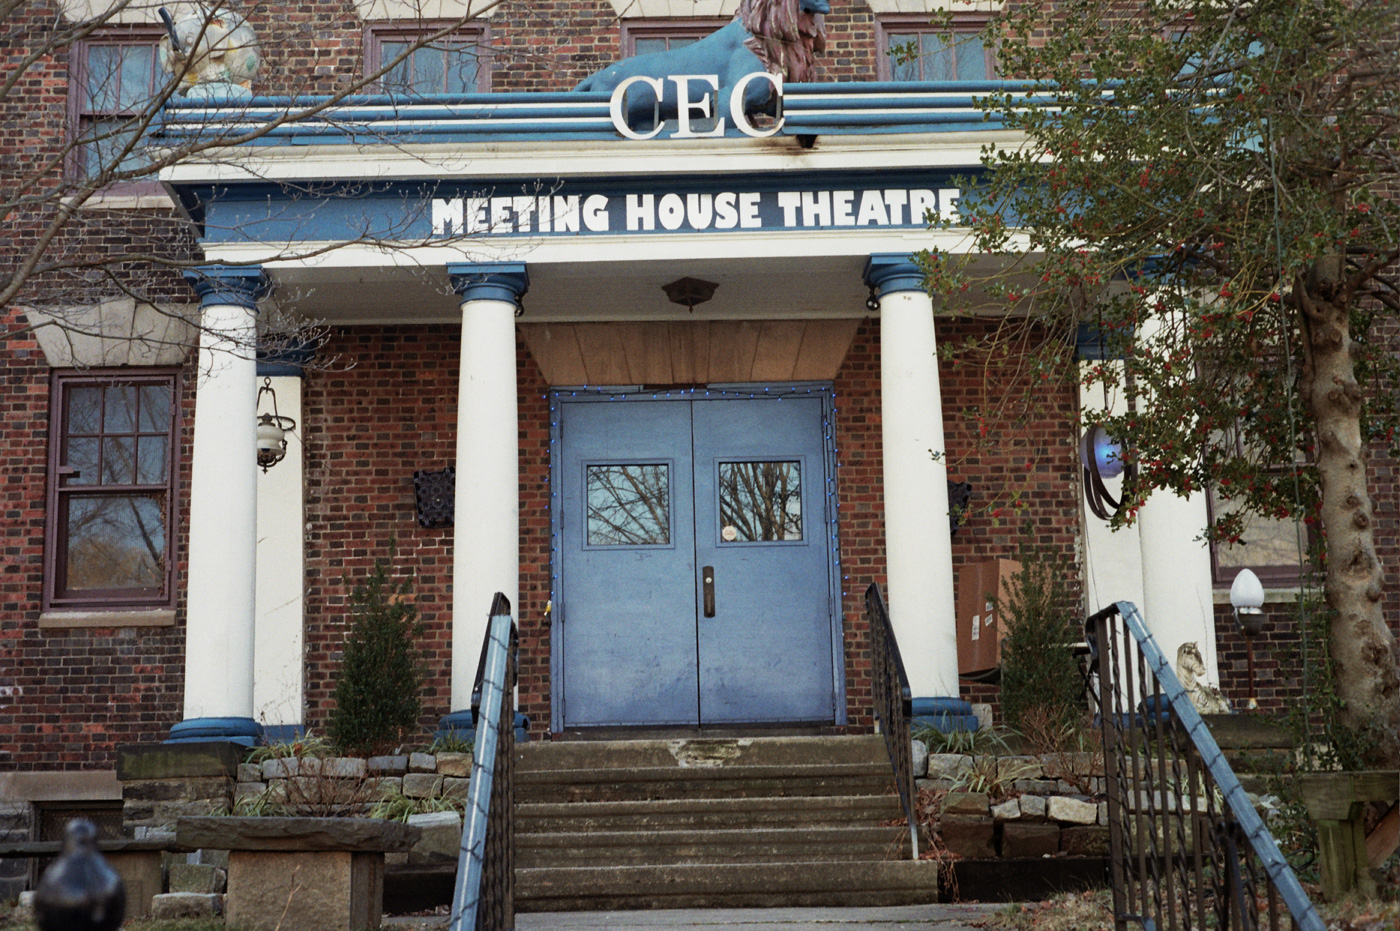 CEC Meeting House Theatre